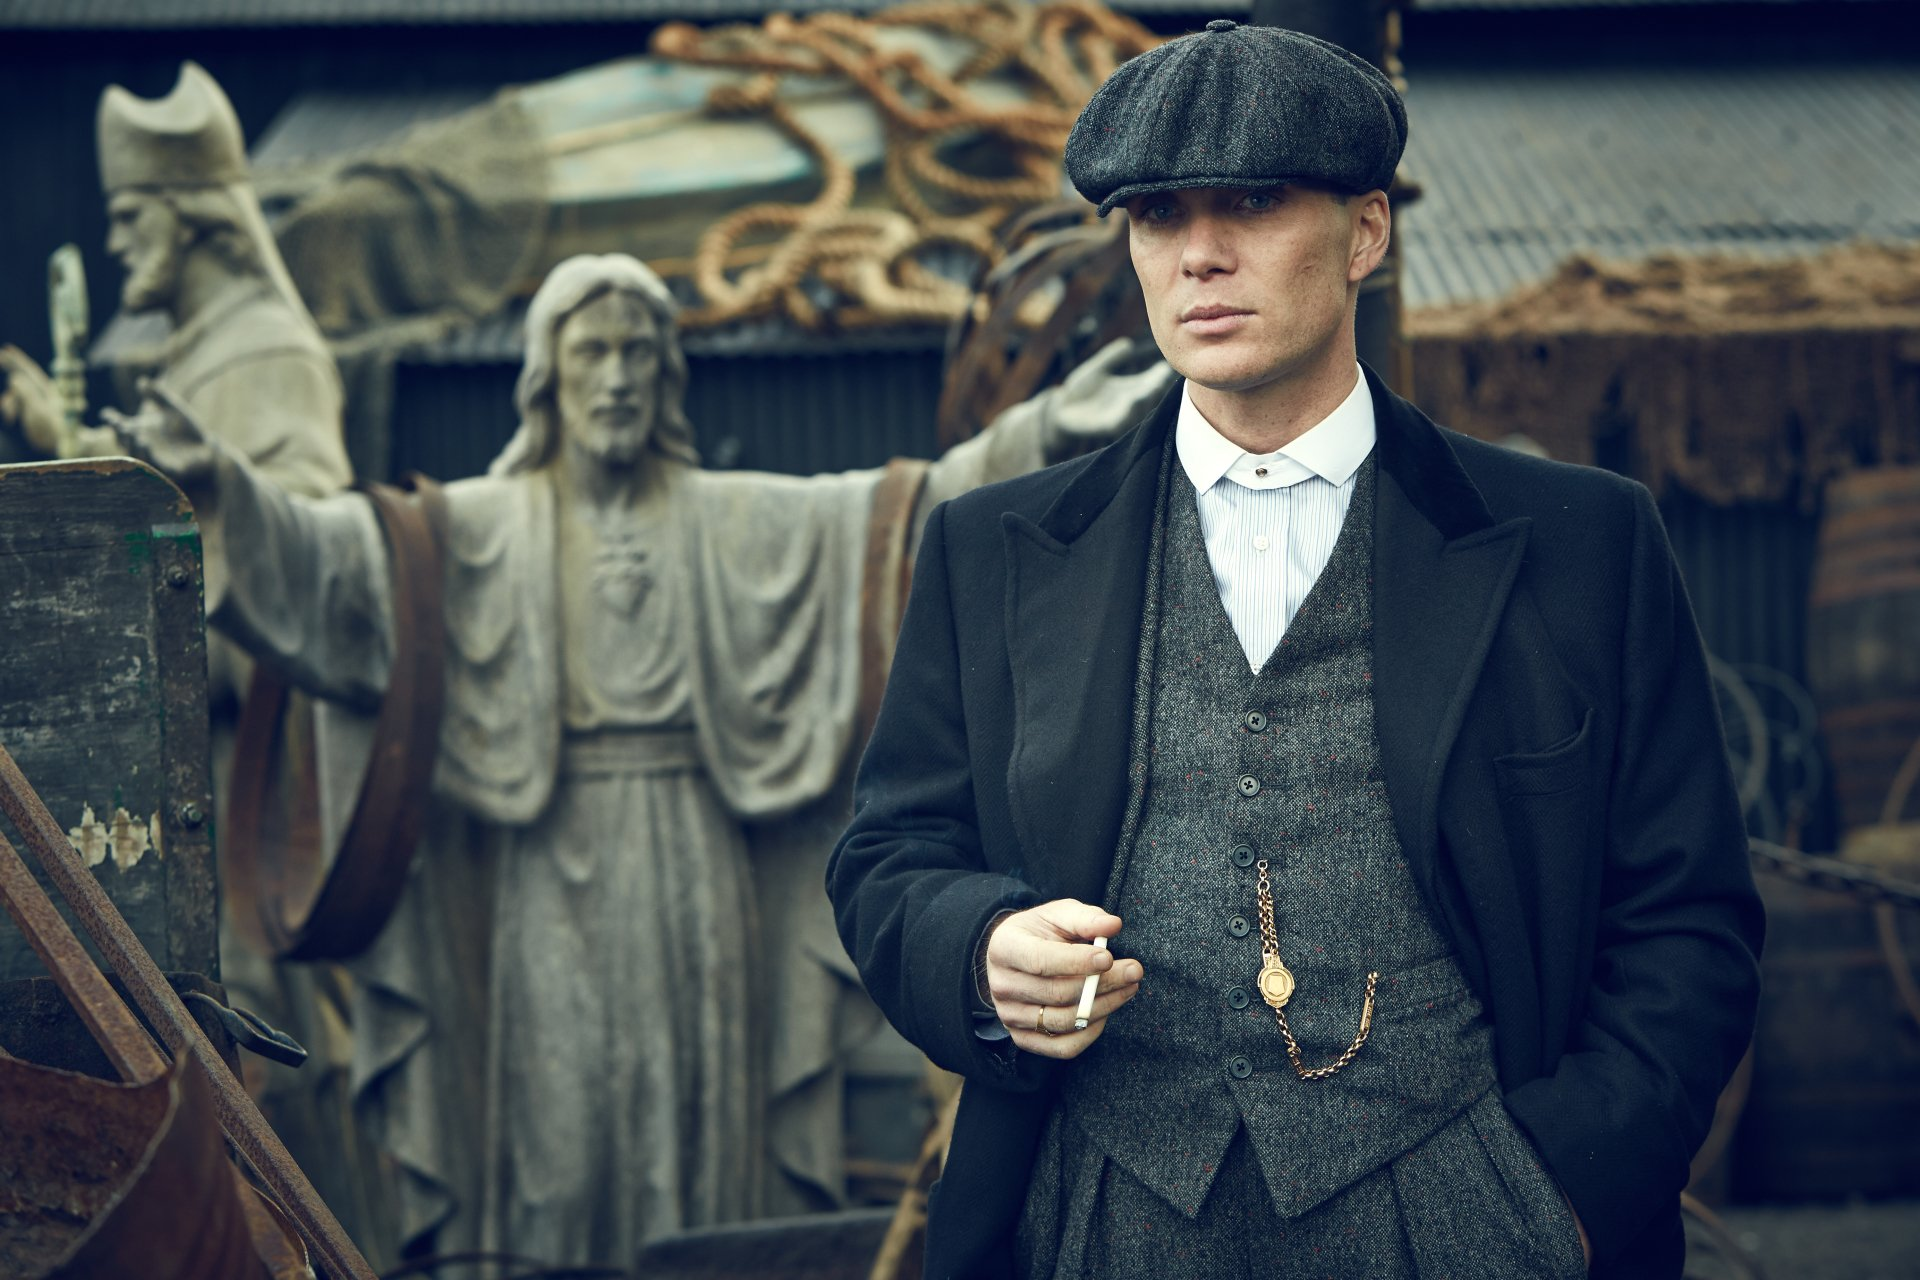 Peaky Blinders Wallpaper Iphone X Peaky Blinders 5k Retina Ultra Fond D 233 Cran Hd Arri 232 Re